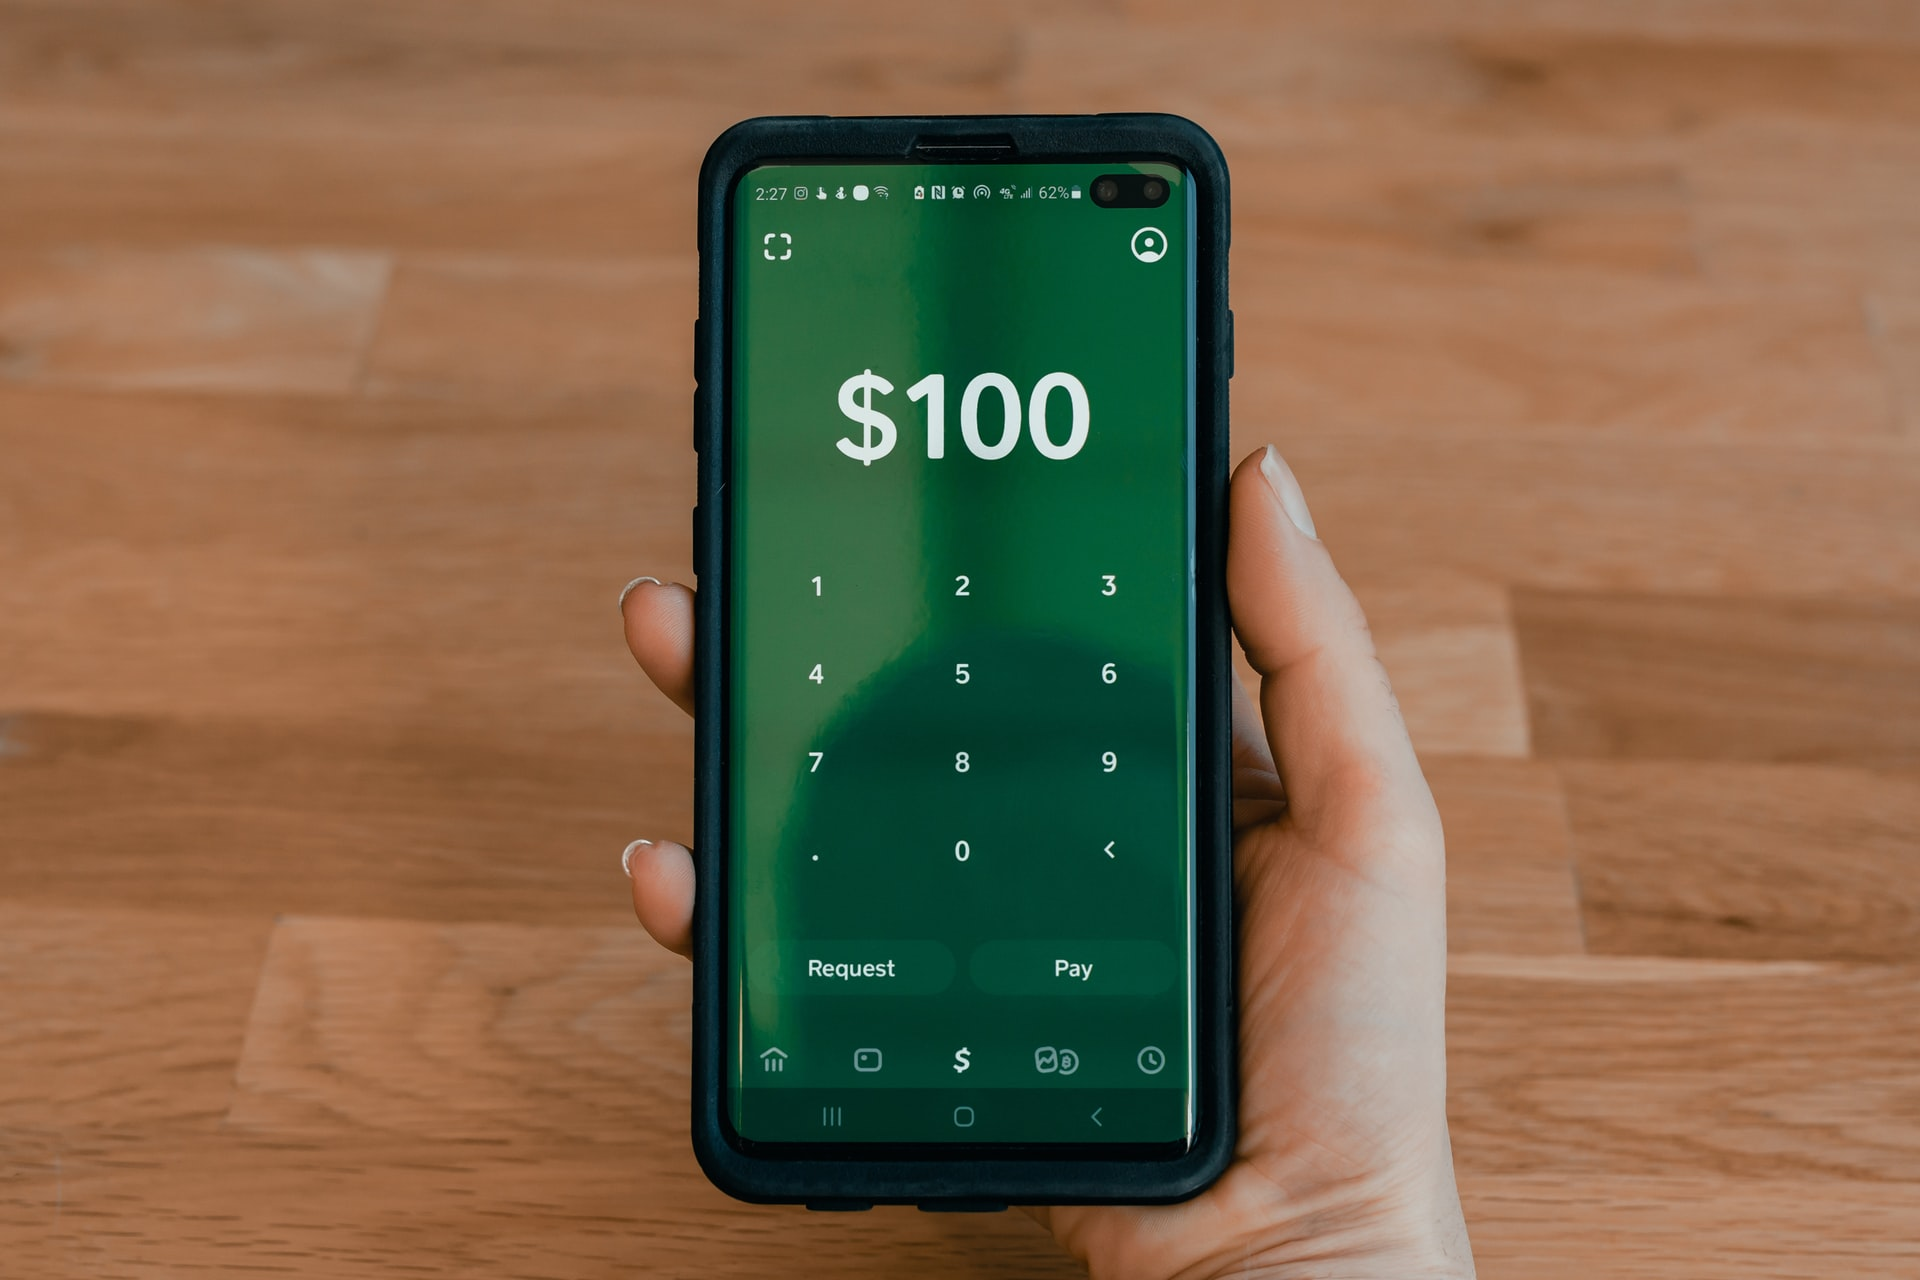 Cell phone showing 100 dollars processed through eCheck verification